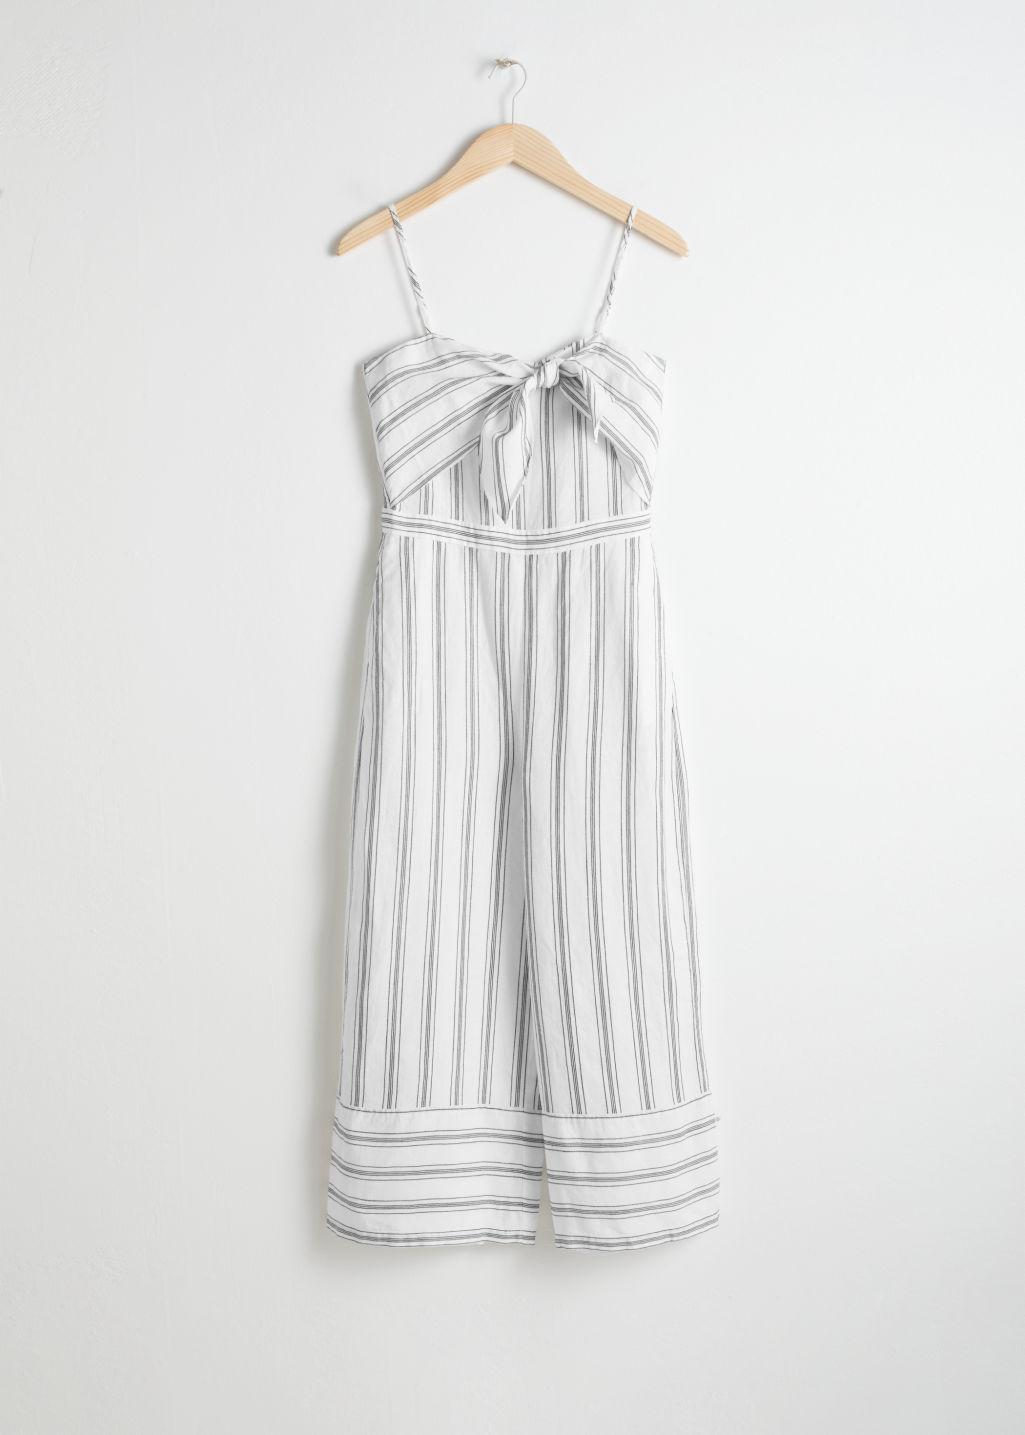 cbf1188acab   Other Stories Linen Blend Tie Up Jumpsuit in White - Lyst